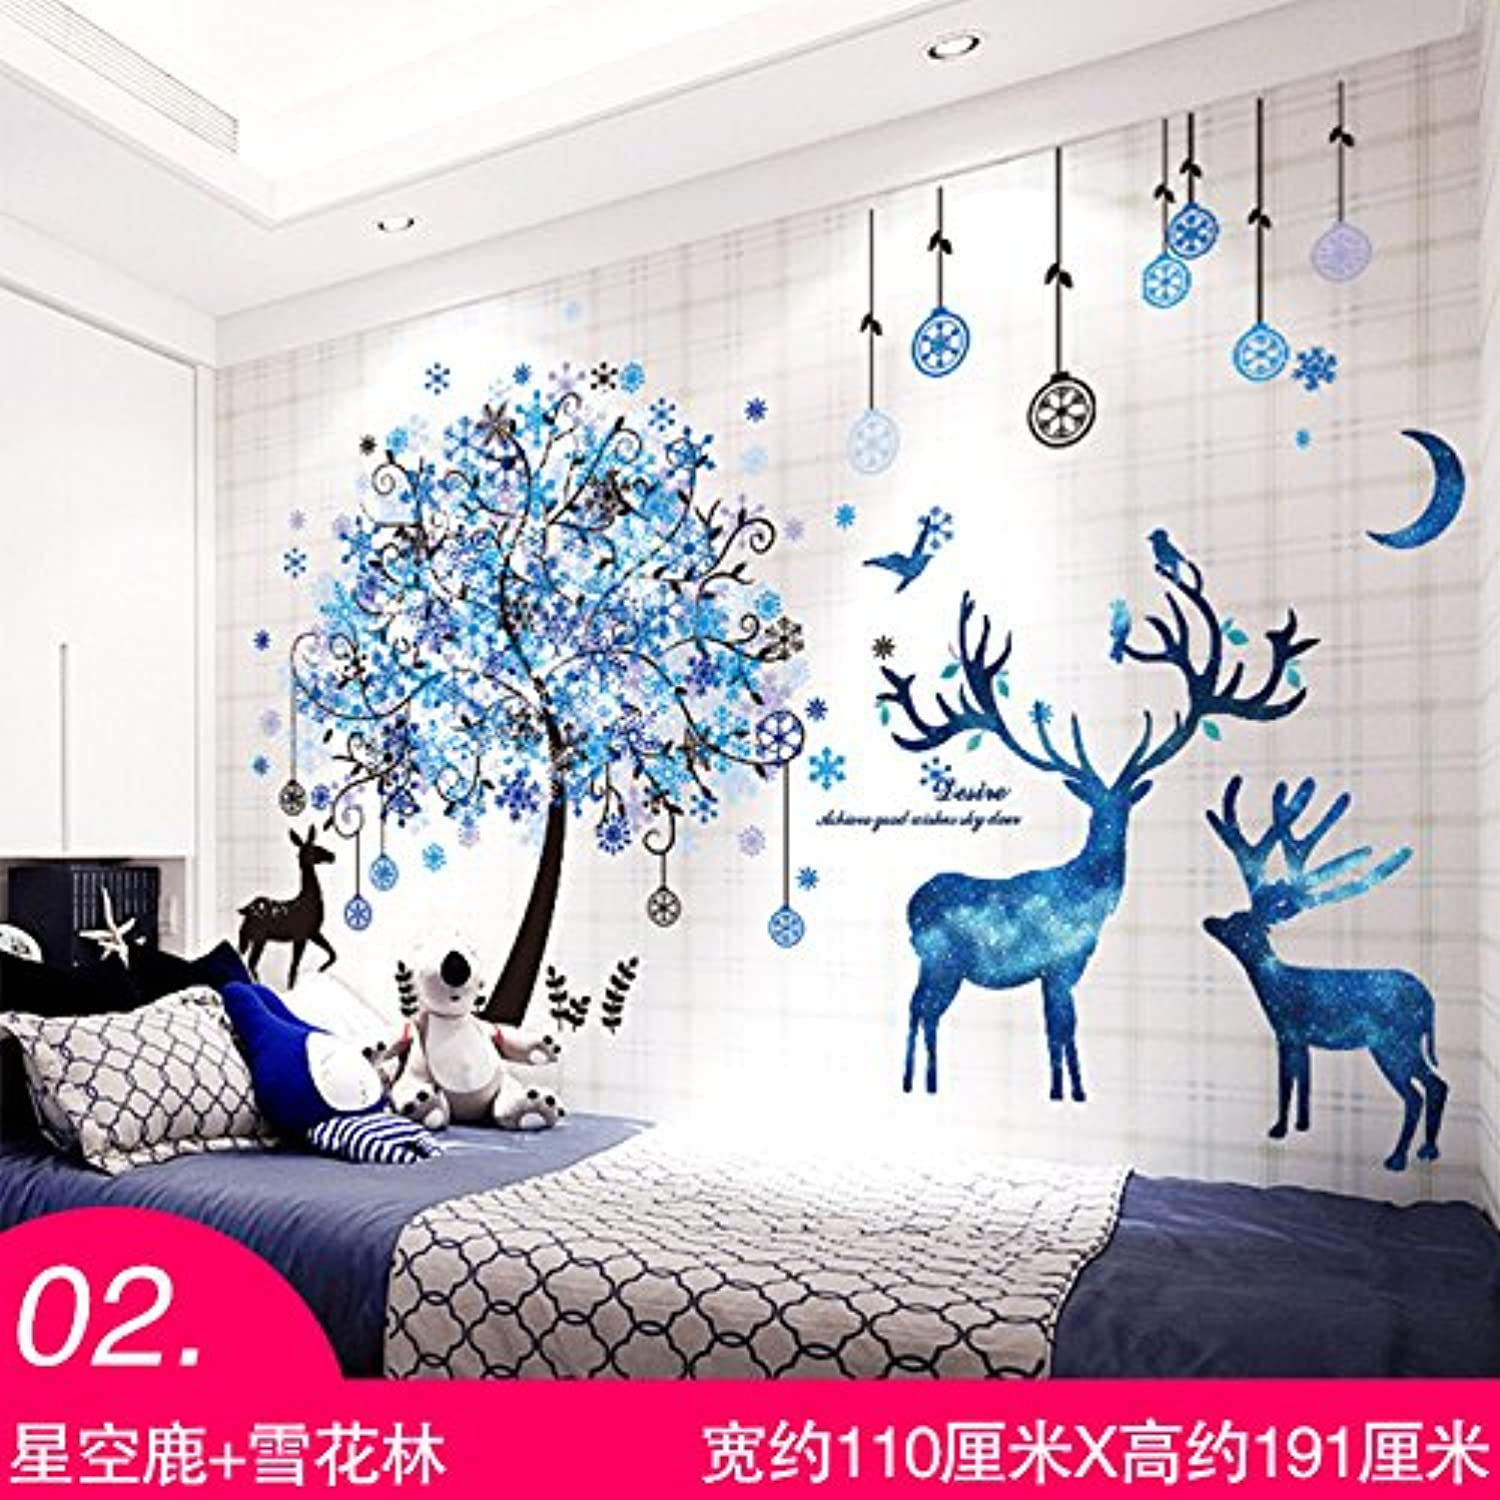 Znzbzt The Bedrooms Sticker Wallpaper Room Wallpaper self Adhesive Wall Decoration Cartoon Posters on The Walls, The Snowflake Forest + Germany